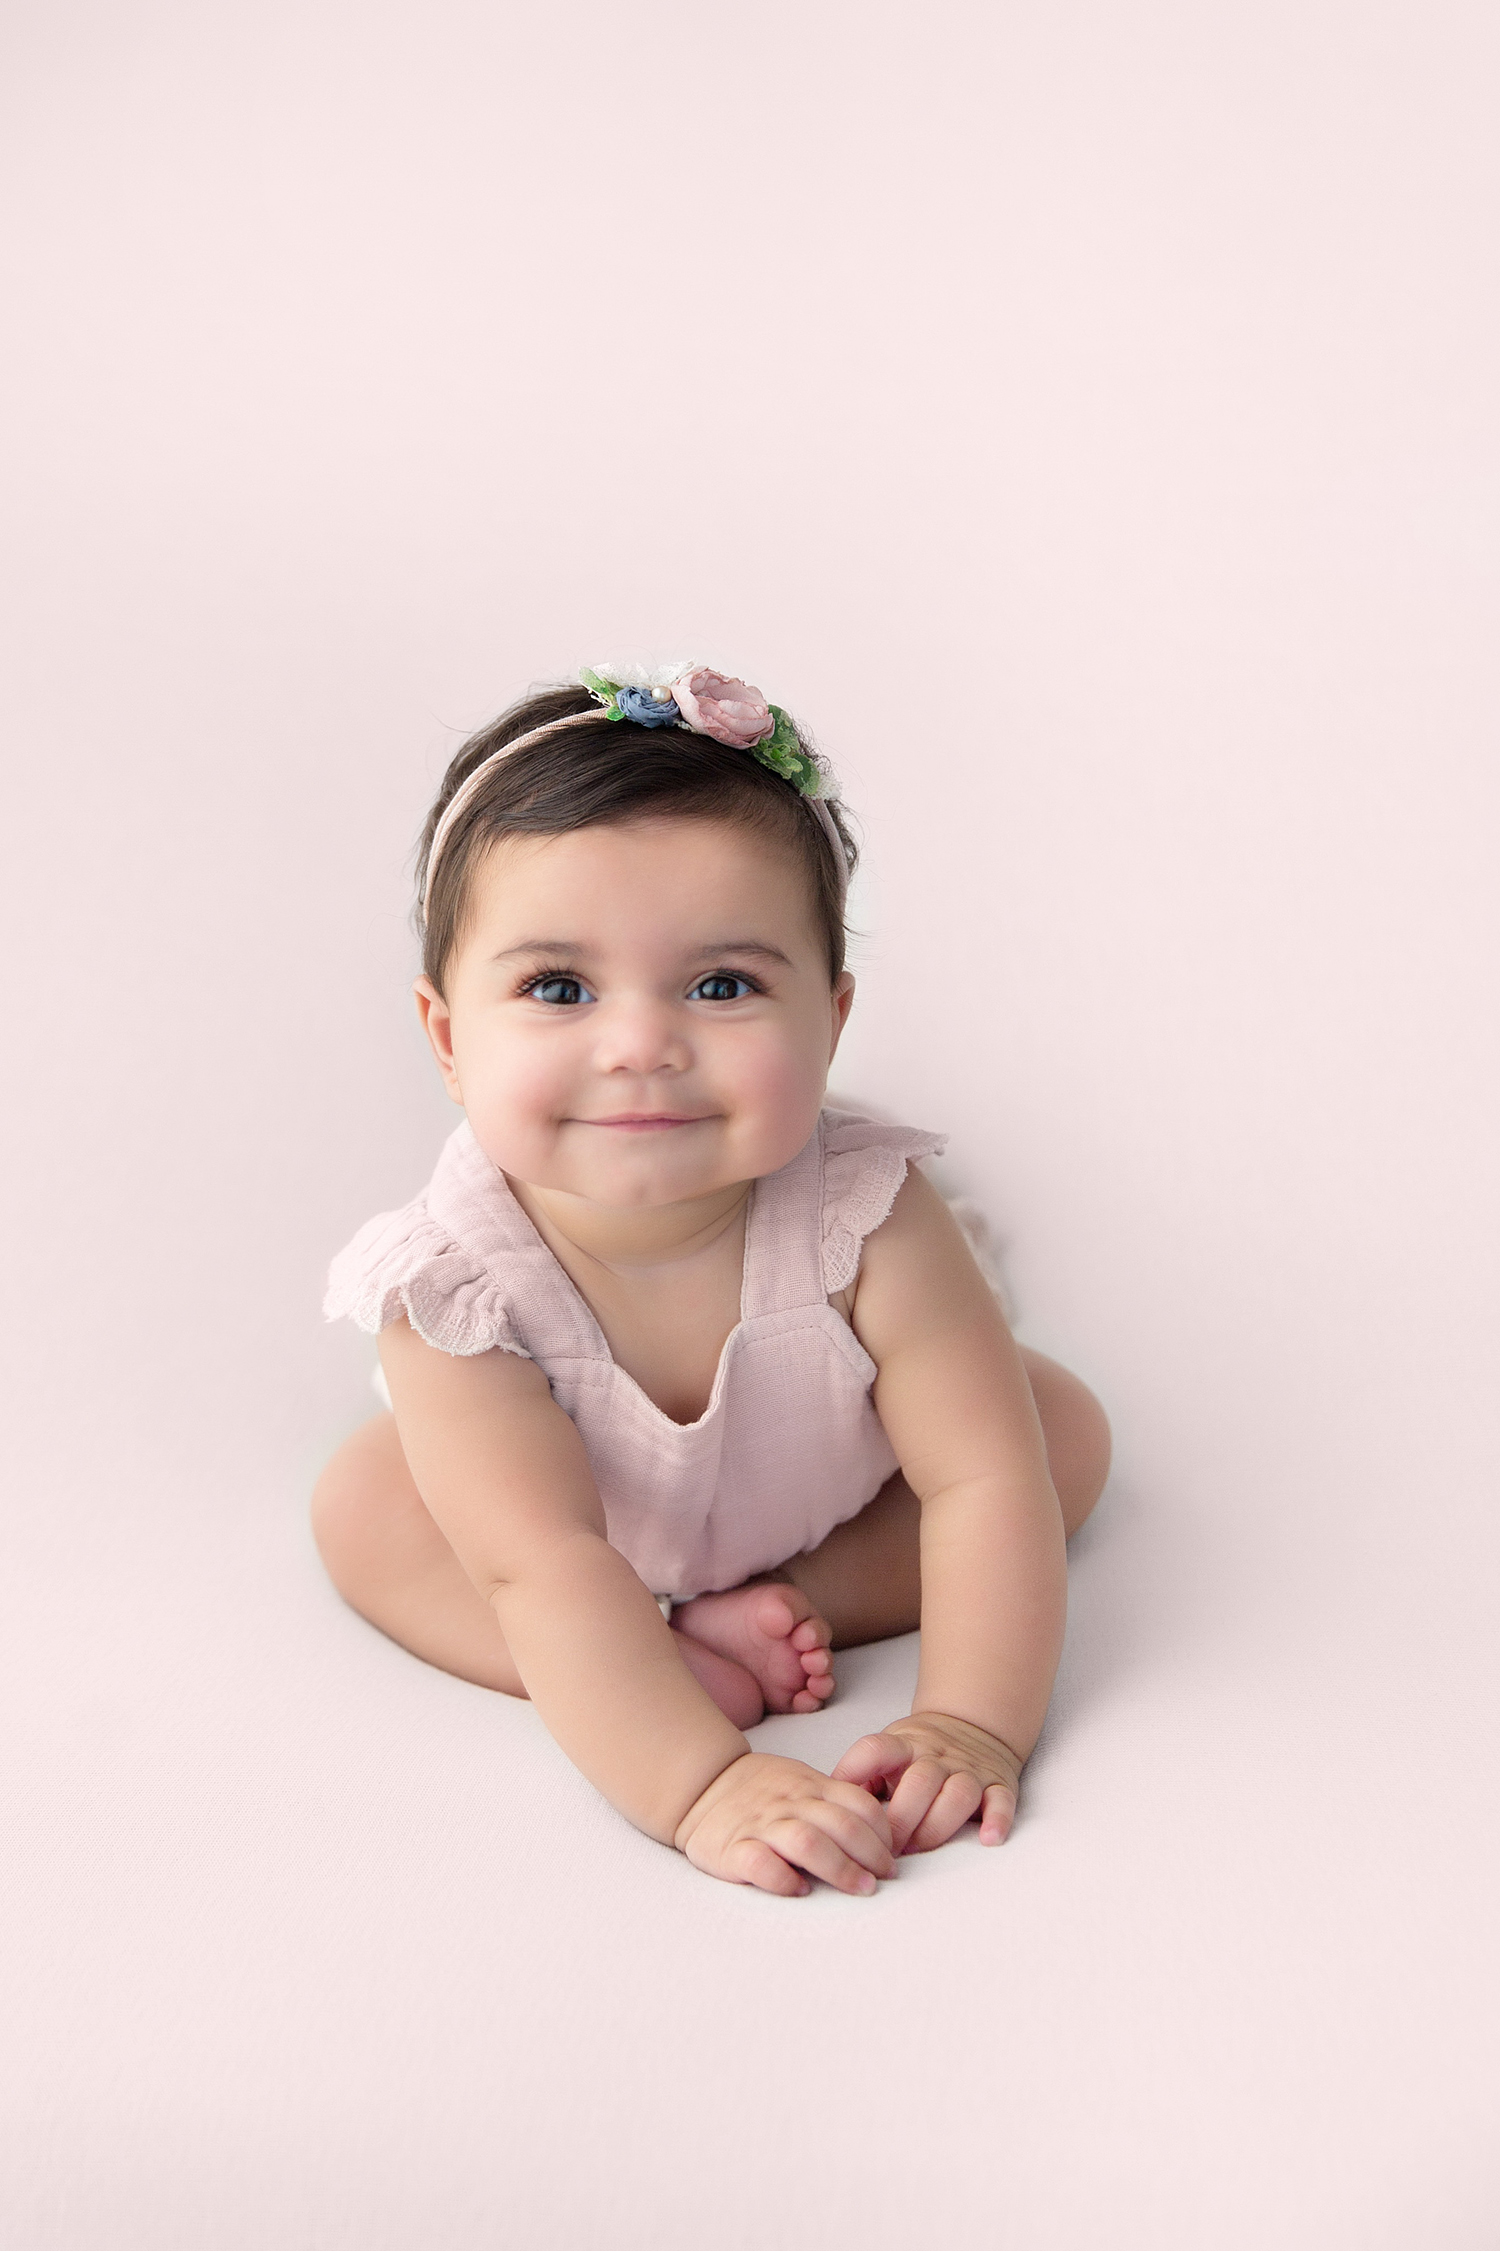 baby 6 month photos